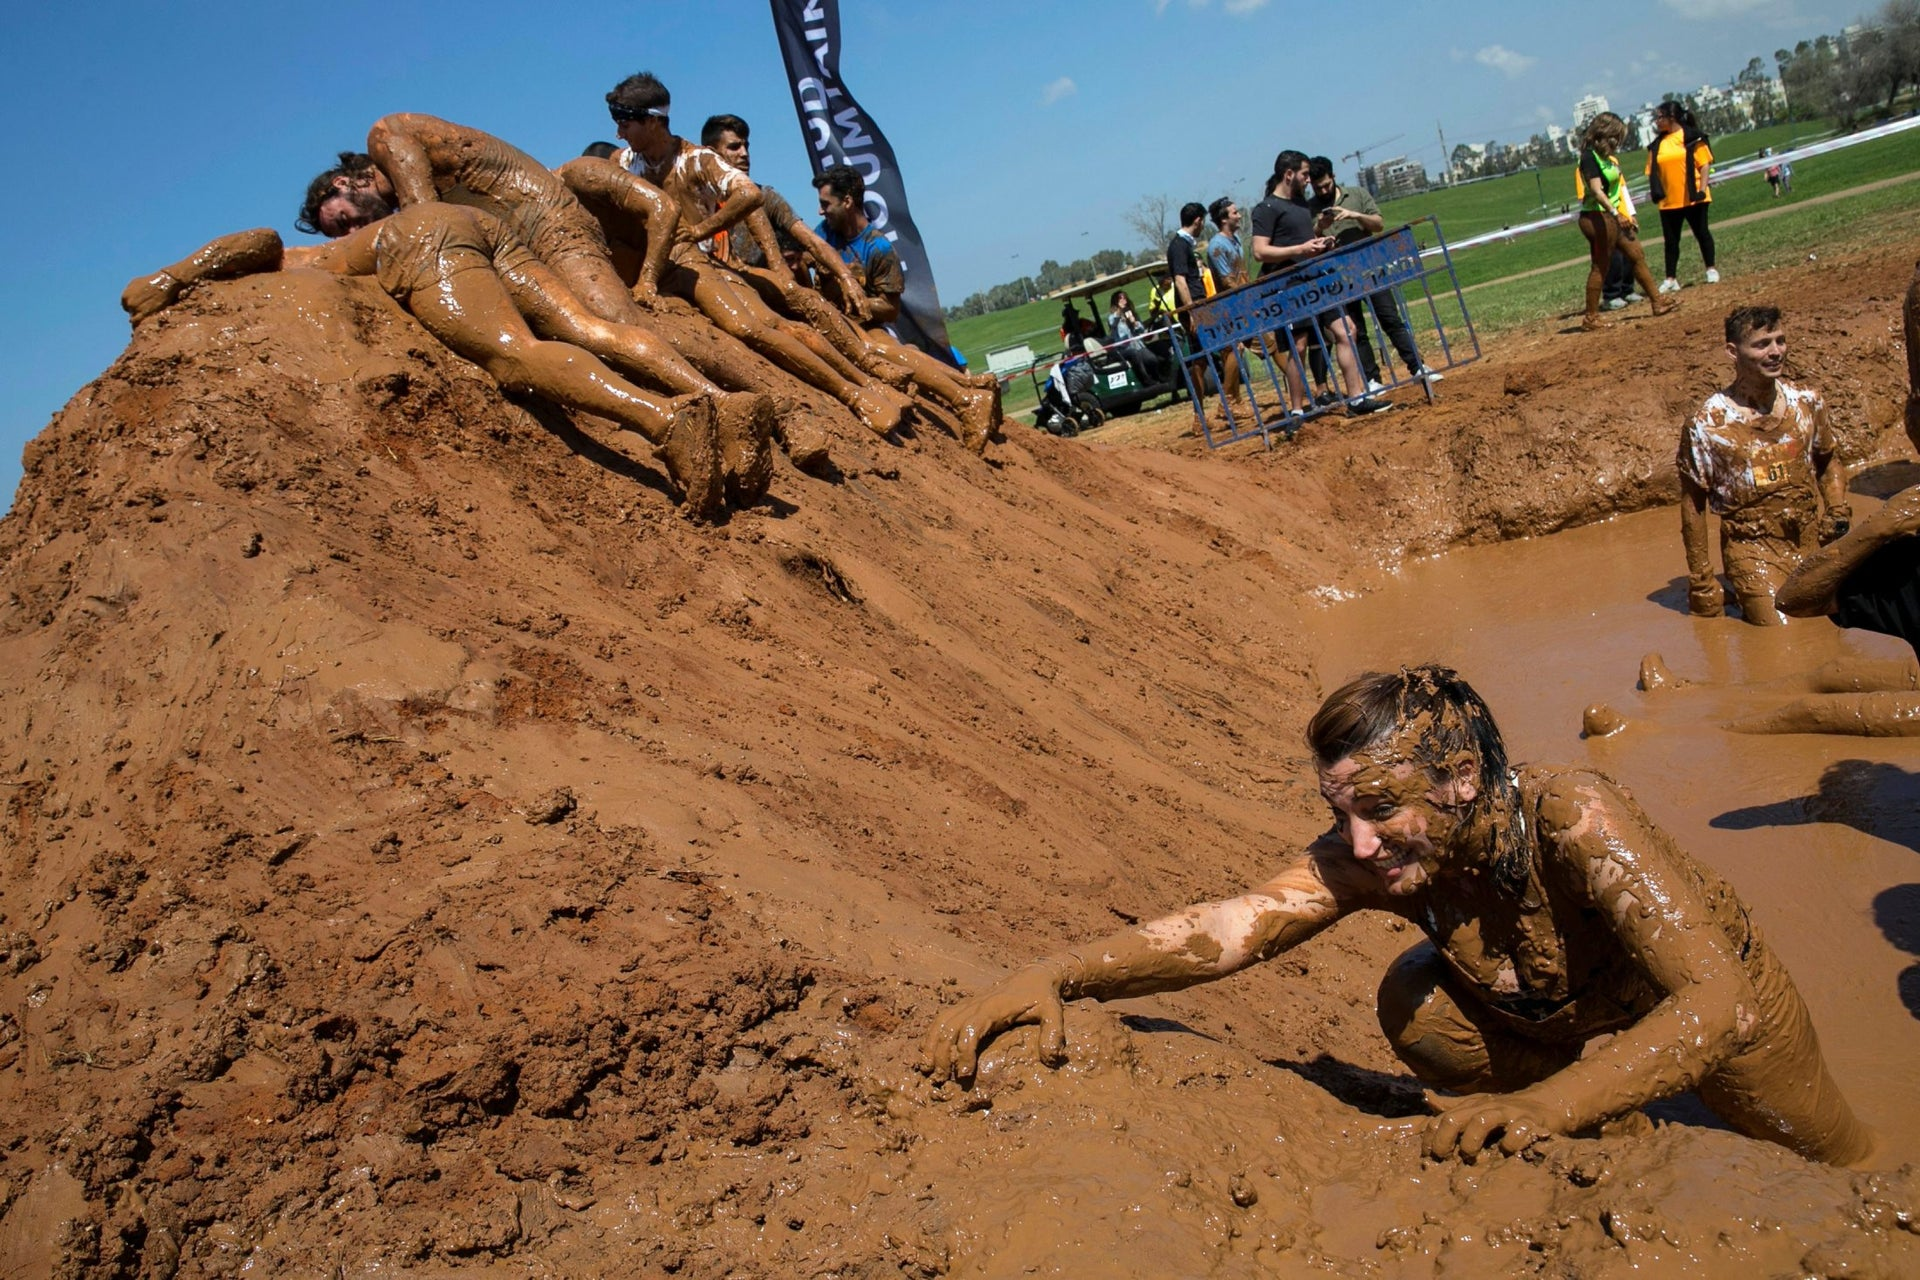 A participant takes part inthe first Mud Day Israel obstacle course race in Tel Aviv, March 24, 2017.